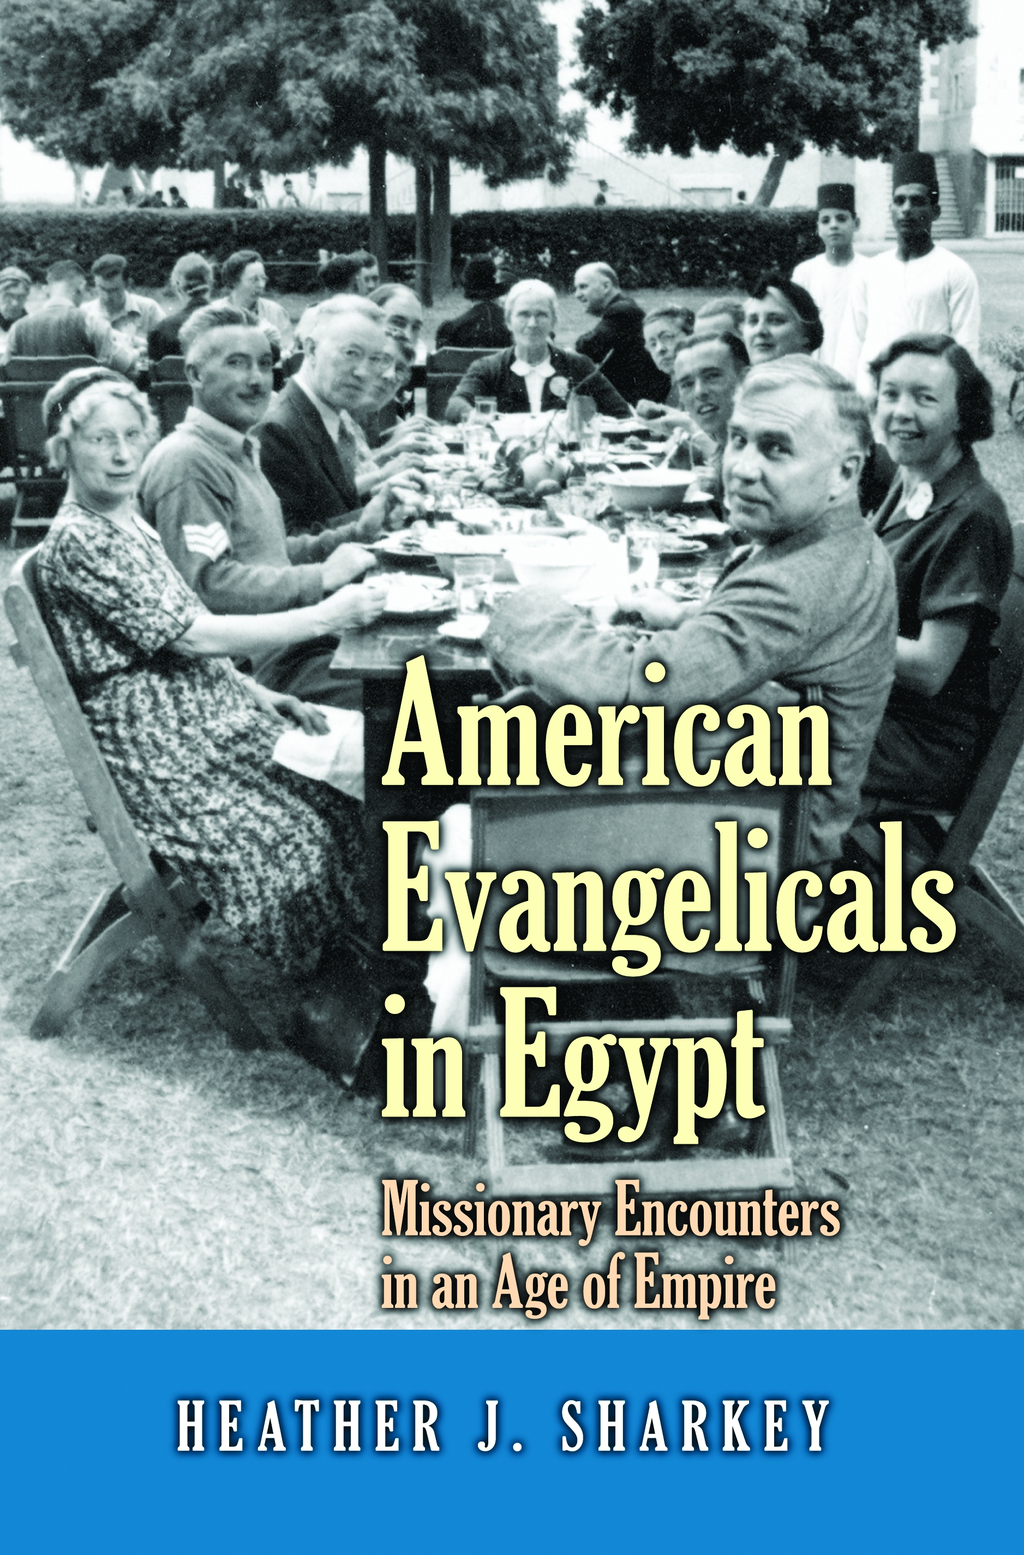 American Evangelicals in Egypt Missionary Encounters in an Age of Empire